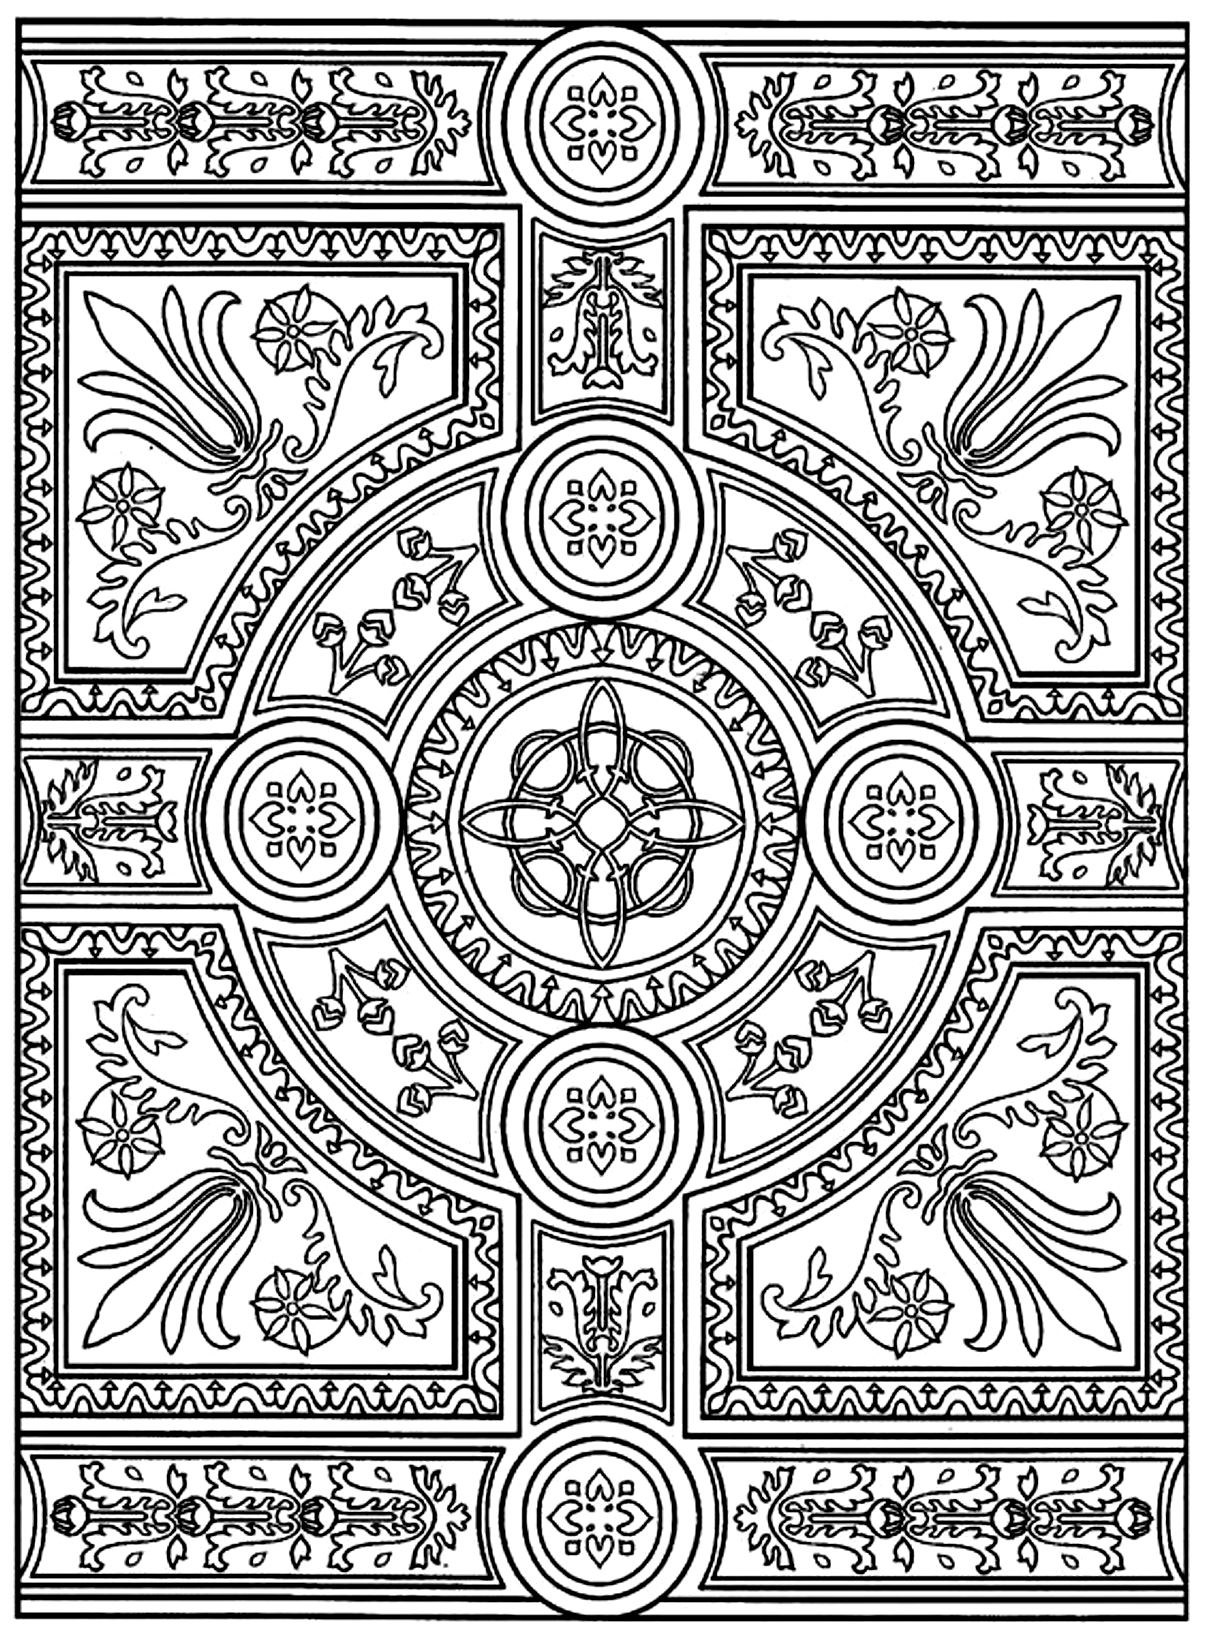 17 Printable Coloring Pages To Help You Instantly Start De-Stressing